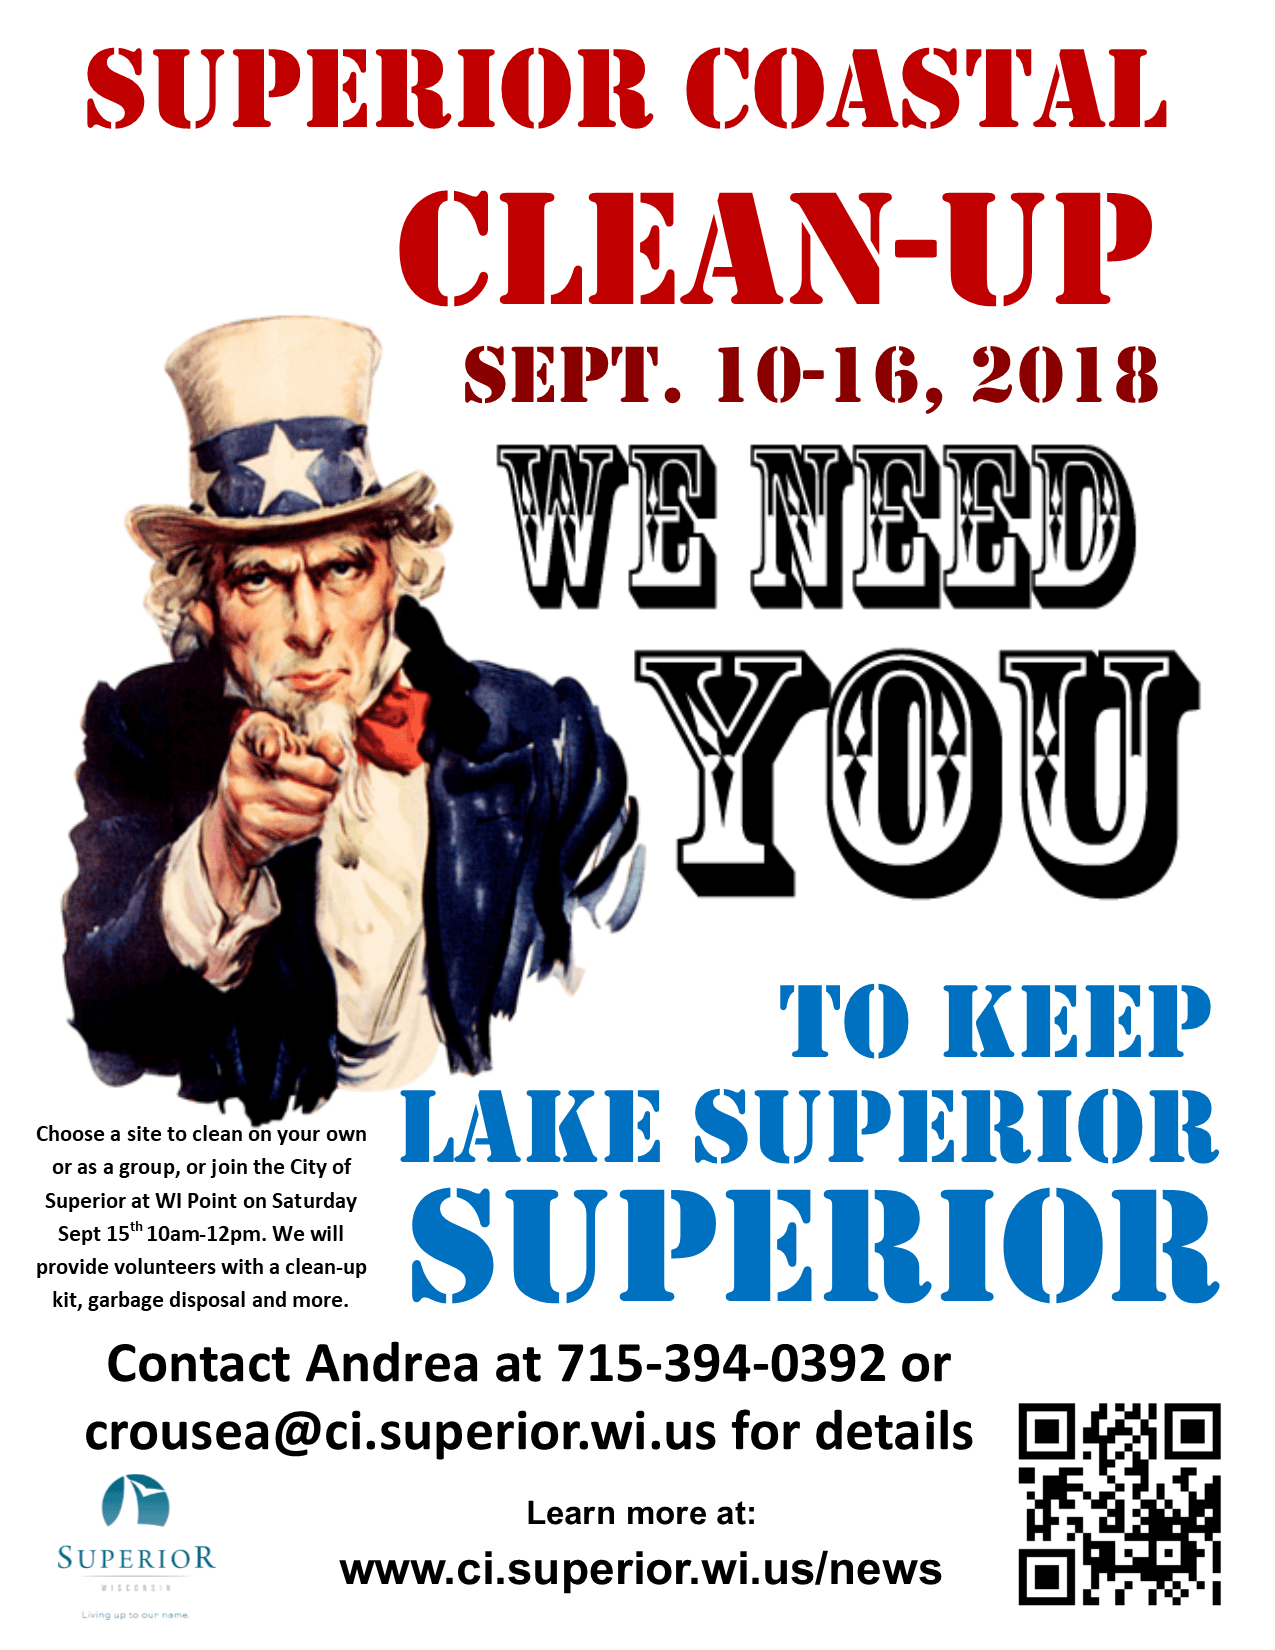 2018_SuperiorCoastalCleanUp_Poster